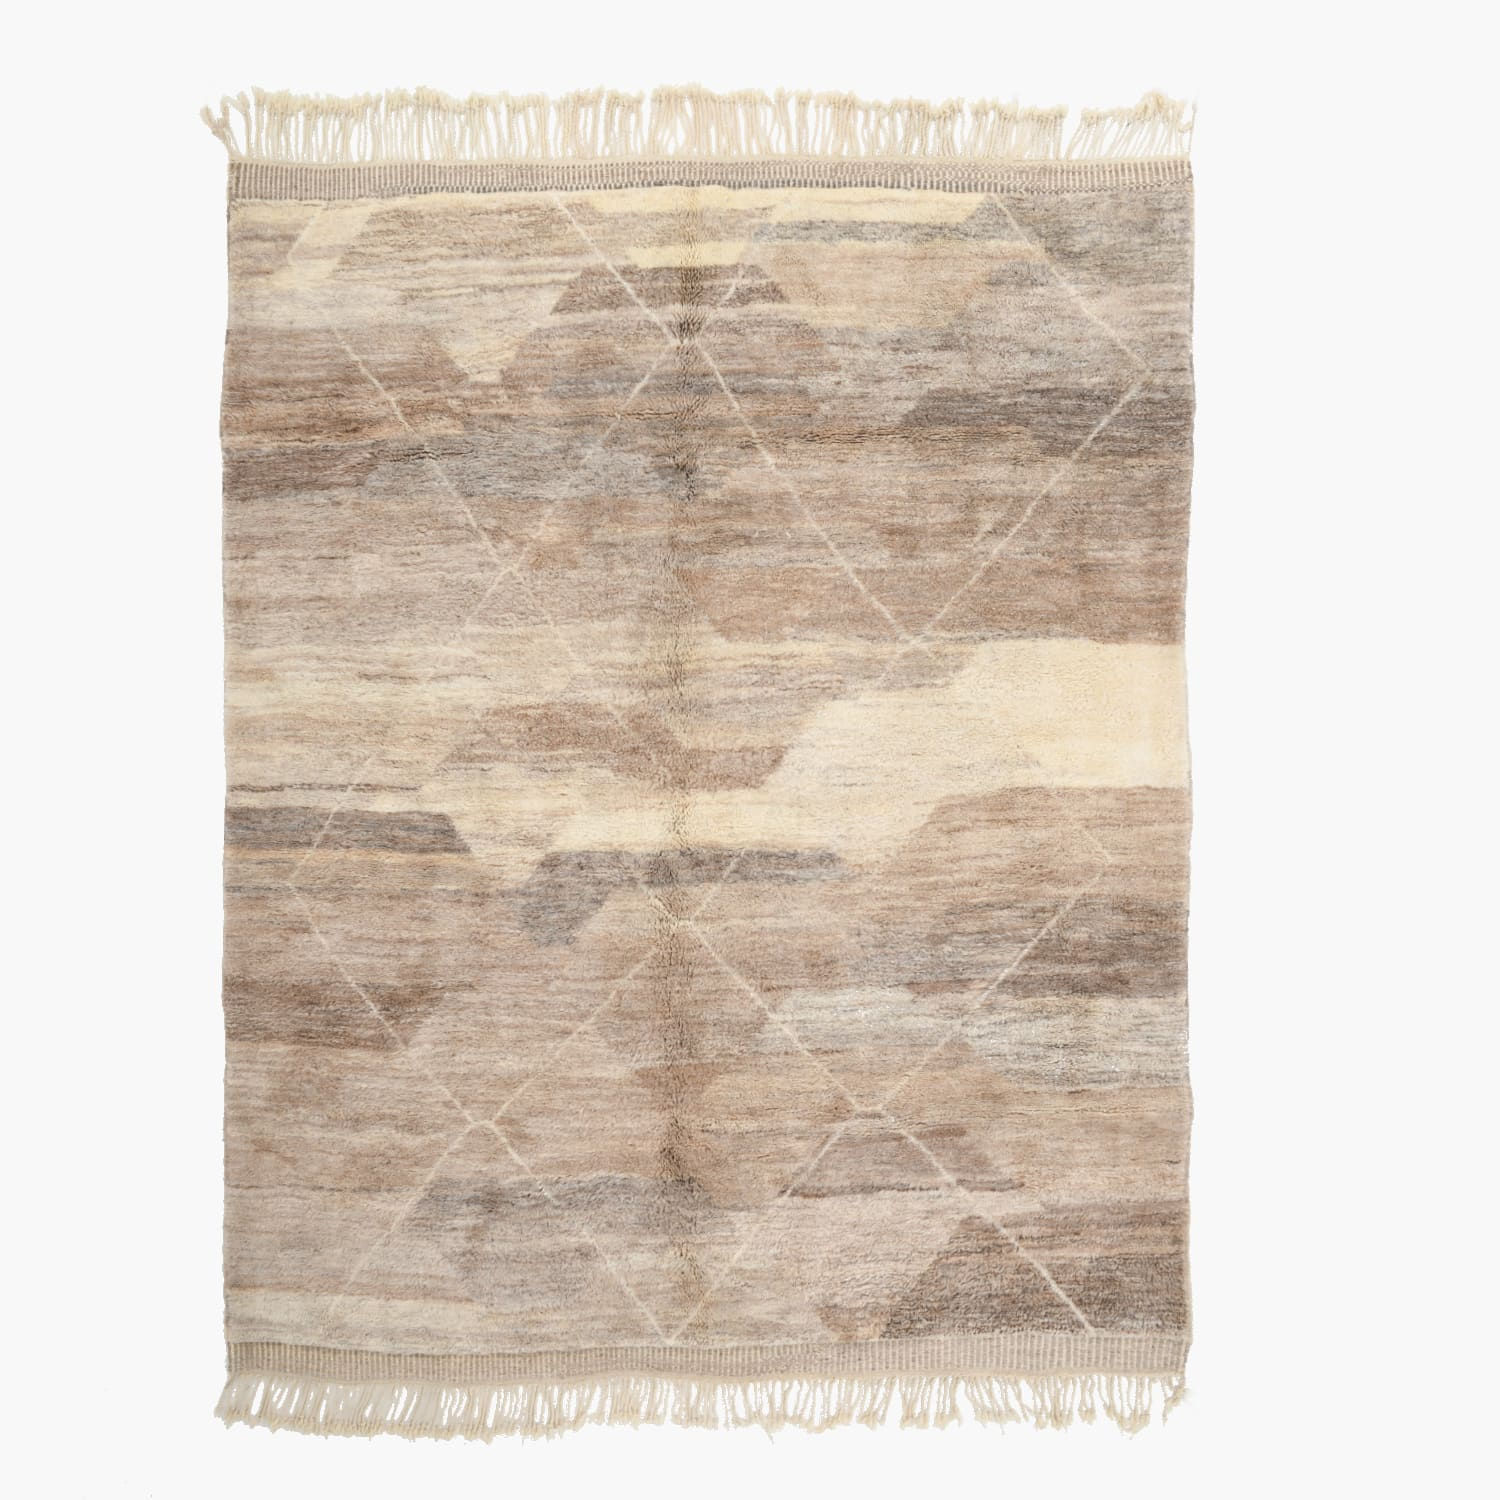 Luxury Mrirt rug 8.8 x 11.5 ft / 268 x 350 cm - Mrirt Rug